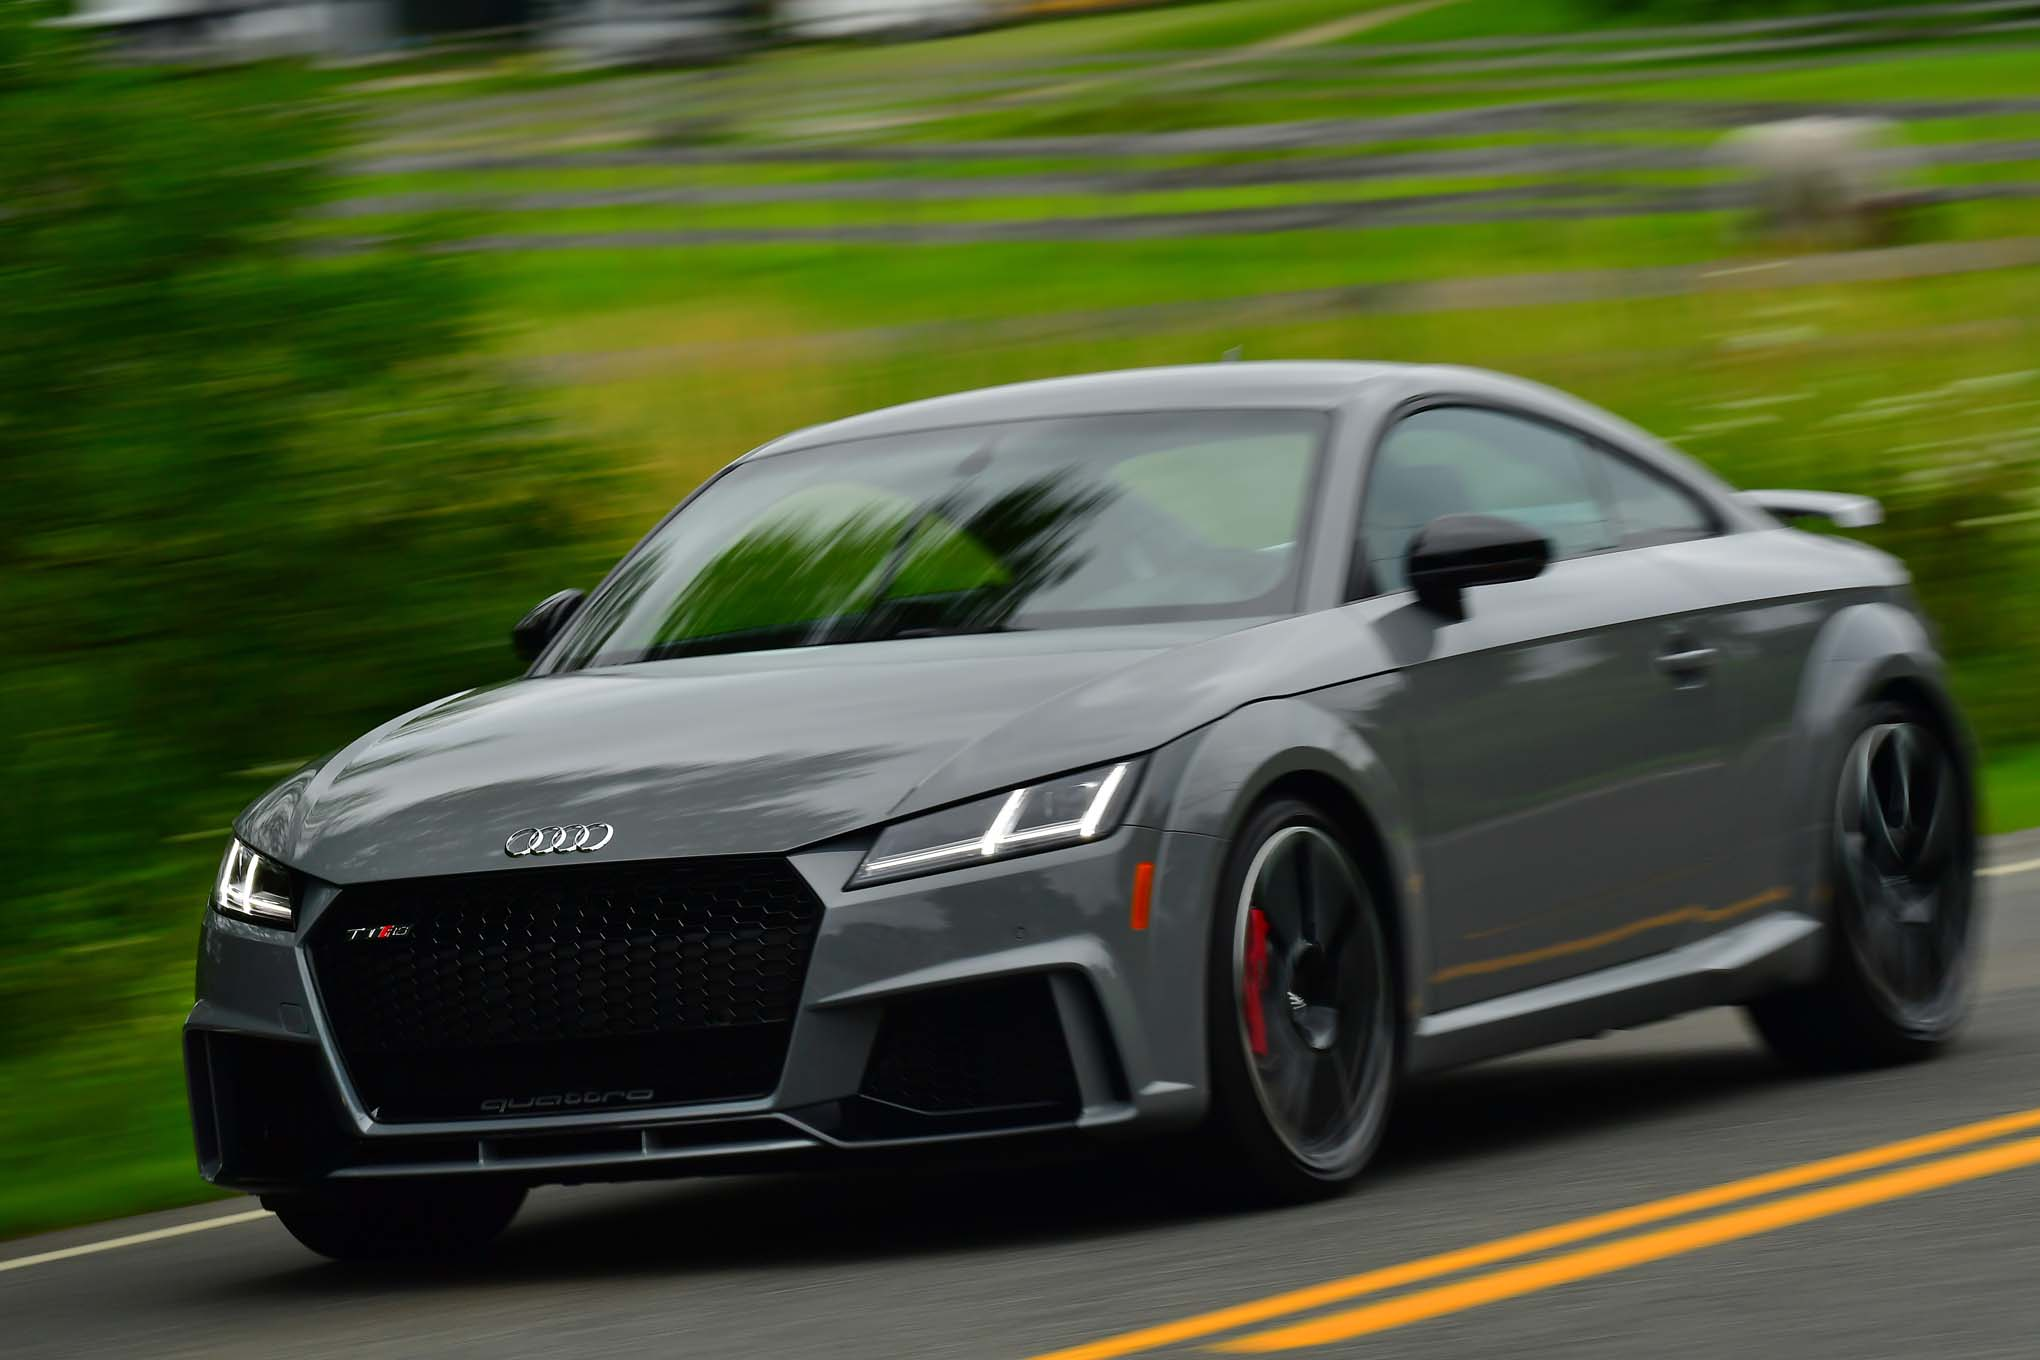 2018 Audi TT RS Front Three Quarter In Motion 03